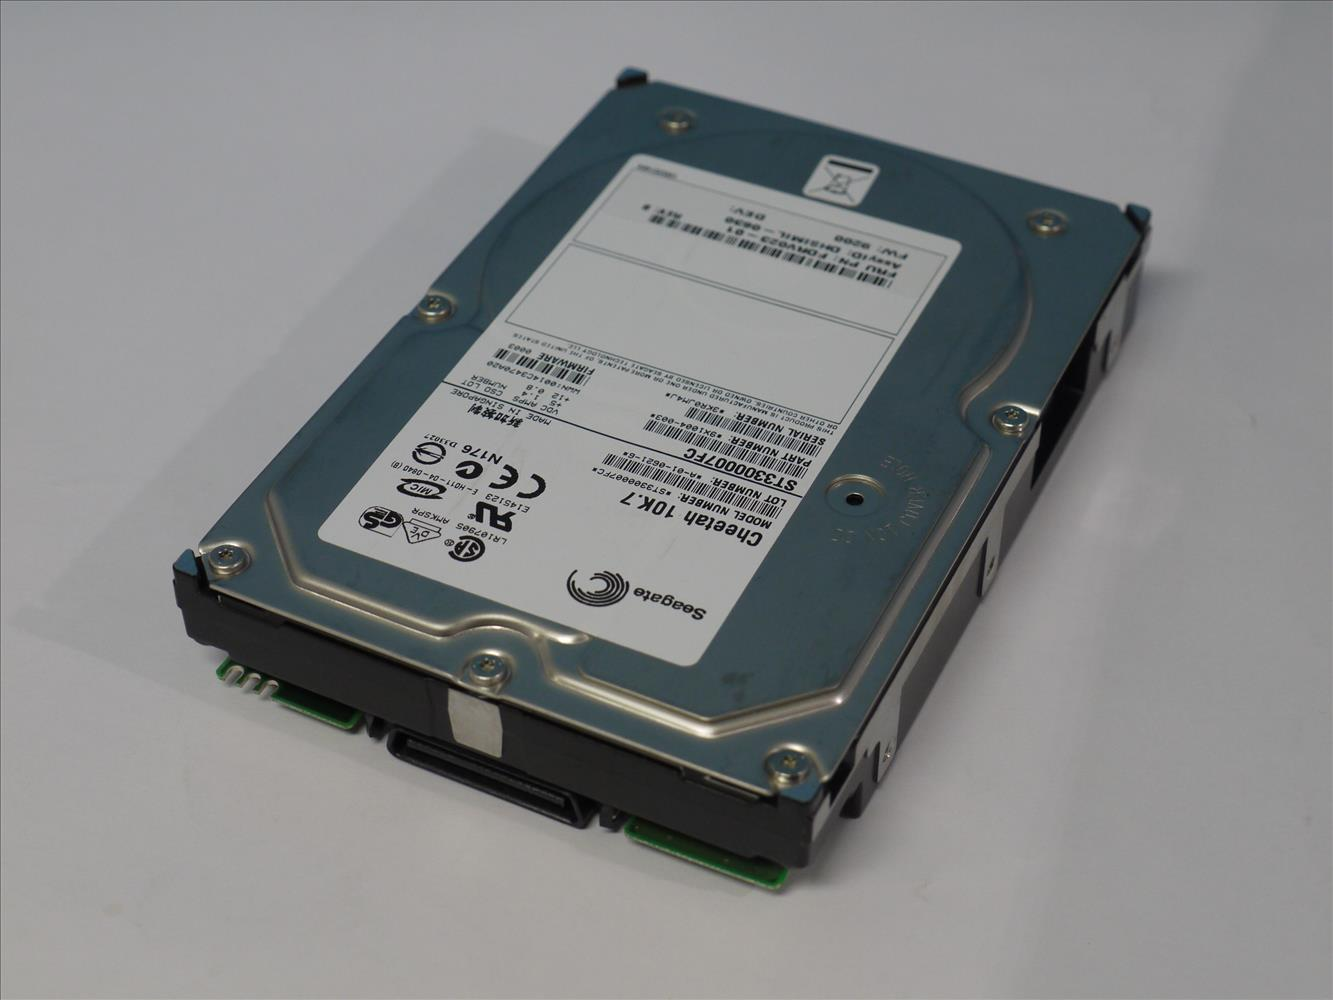 ST3300007FC SEAGATE 300GB 10000rpm 3.5インチ Fibre Channel 2 Gbps 【中古】【送料無料セール中! (大型商品は対象外)】